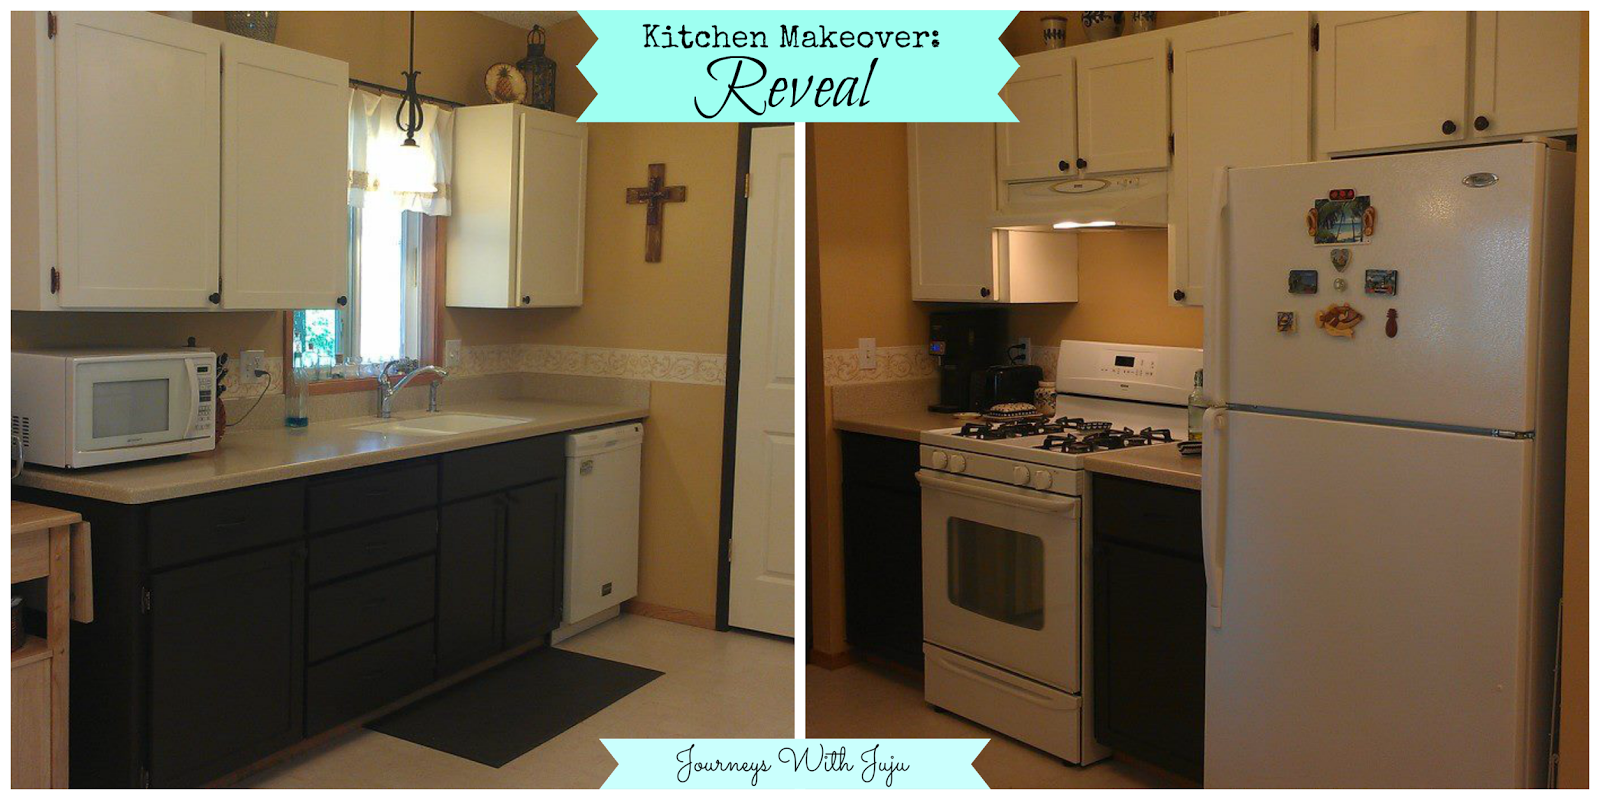 Journeys with juju kitchen cabinet makeover the reveal for Kitchen cabinets makeover